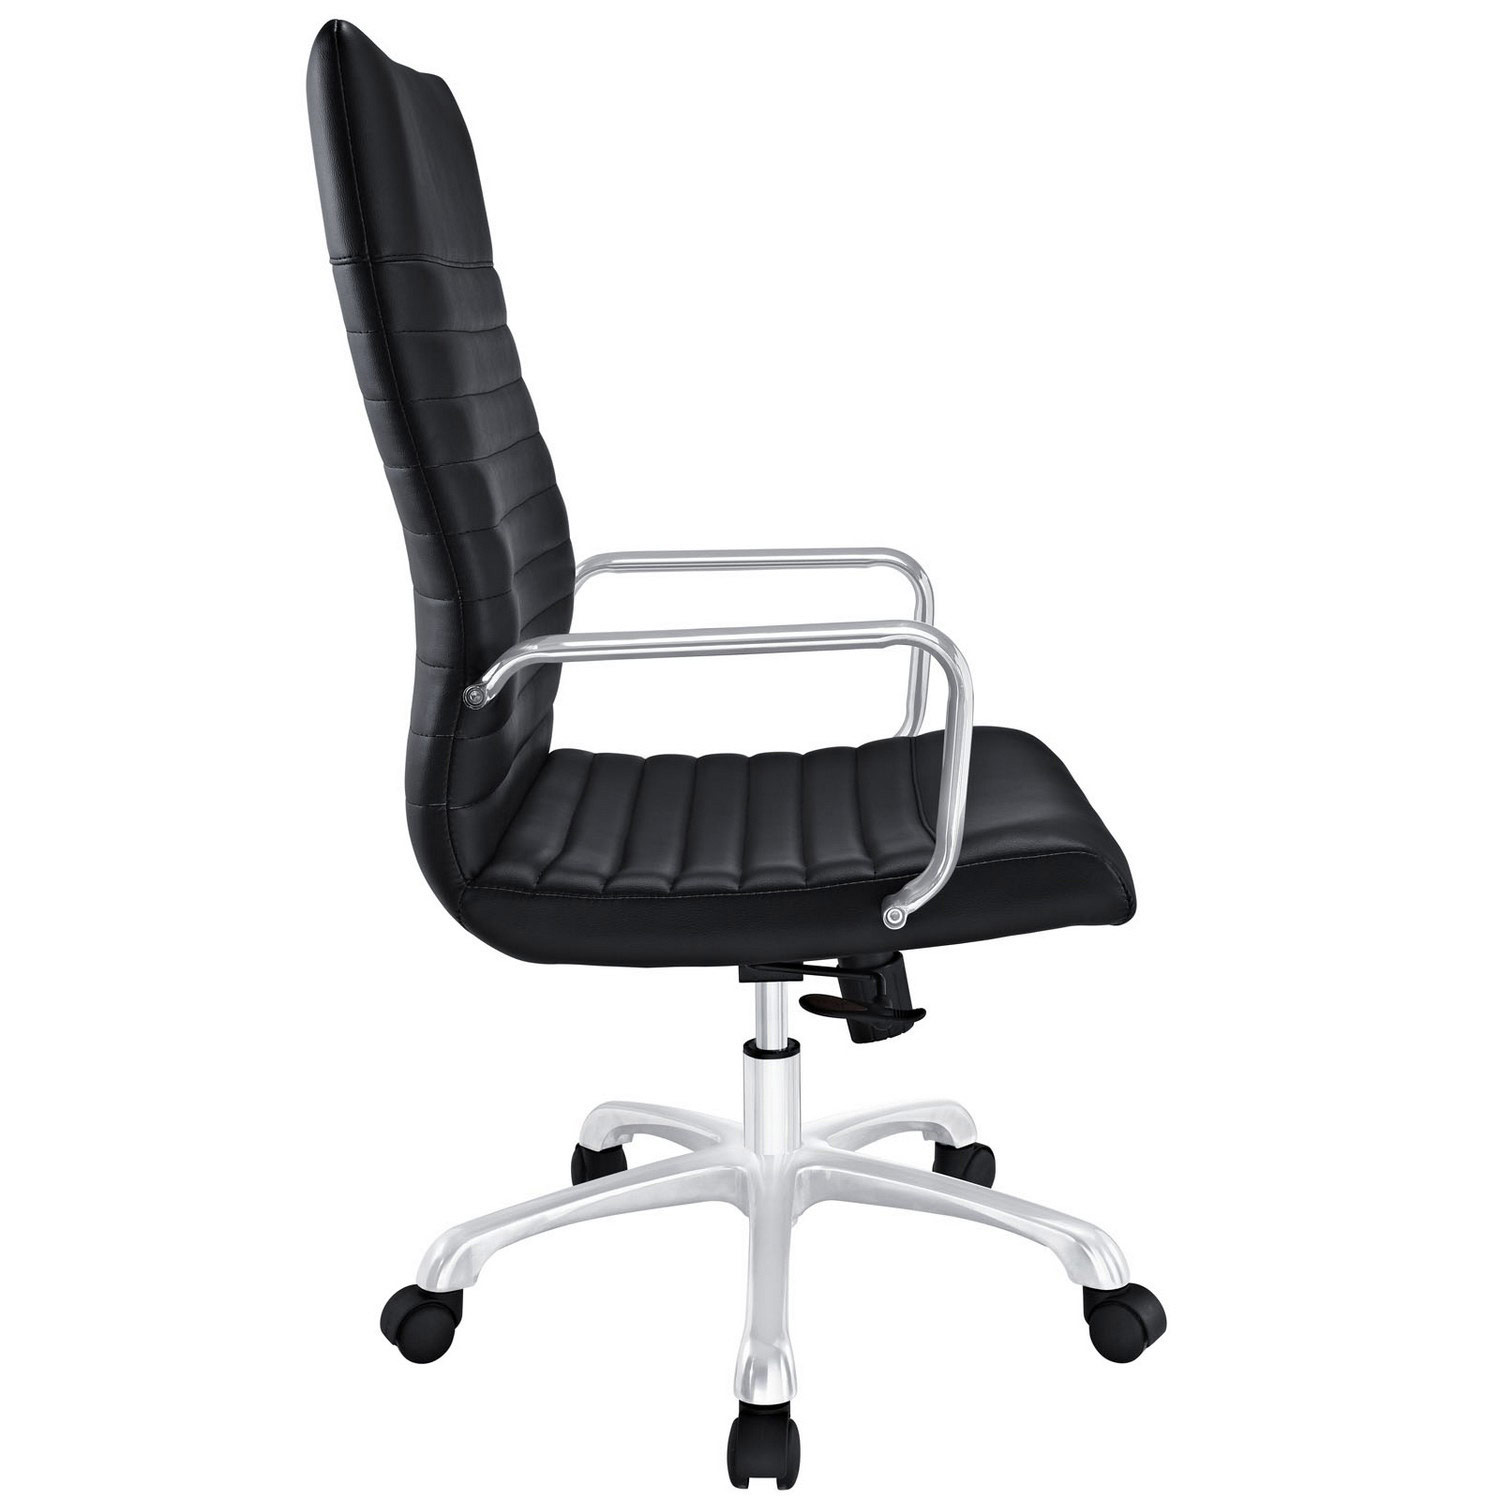 Modway Finesse Highback Office Chair - Black